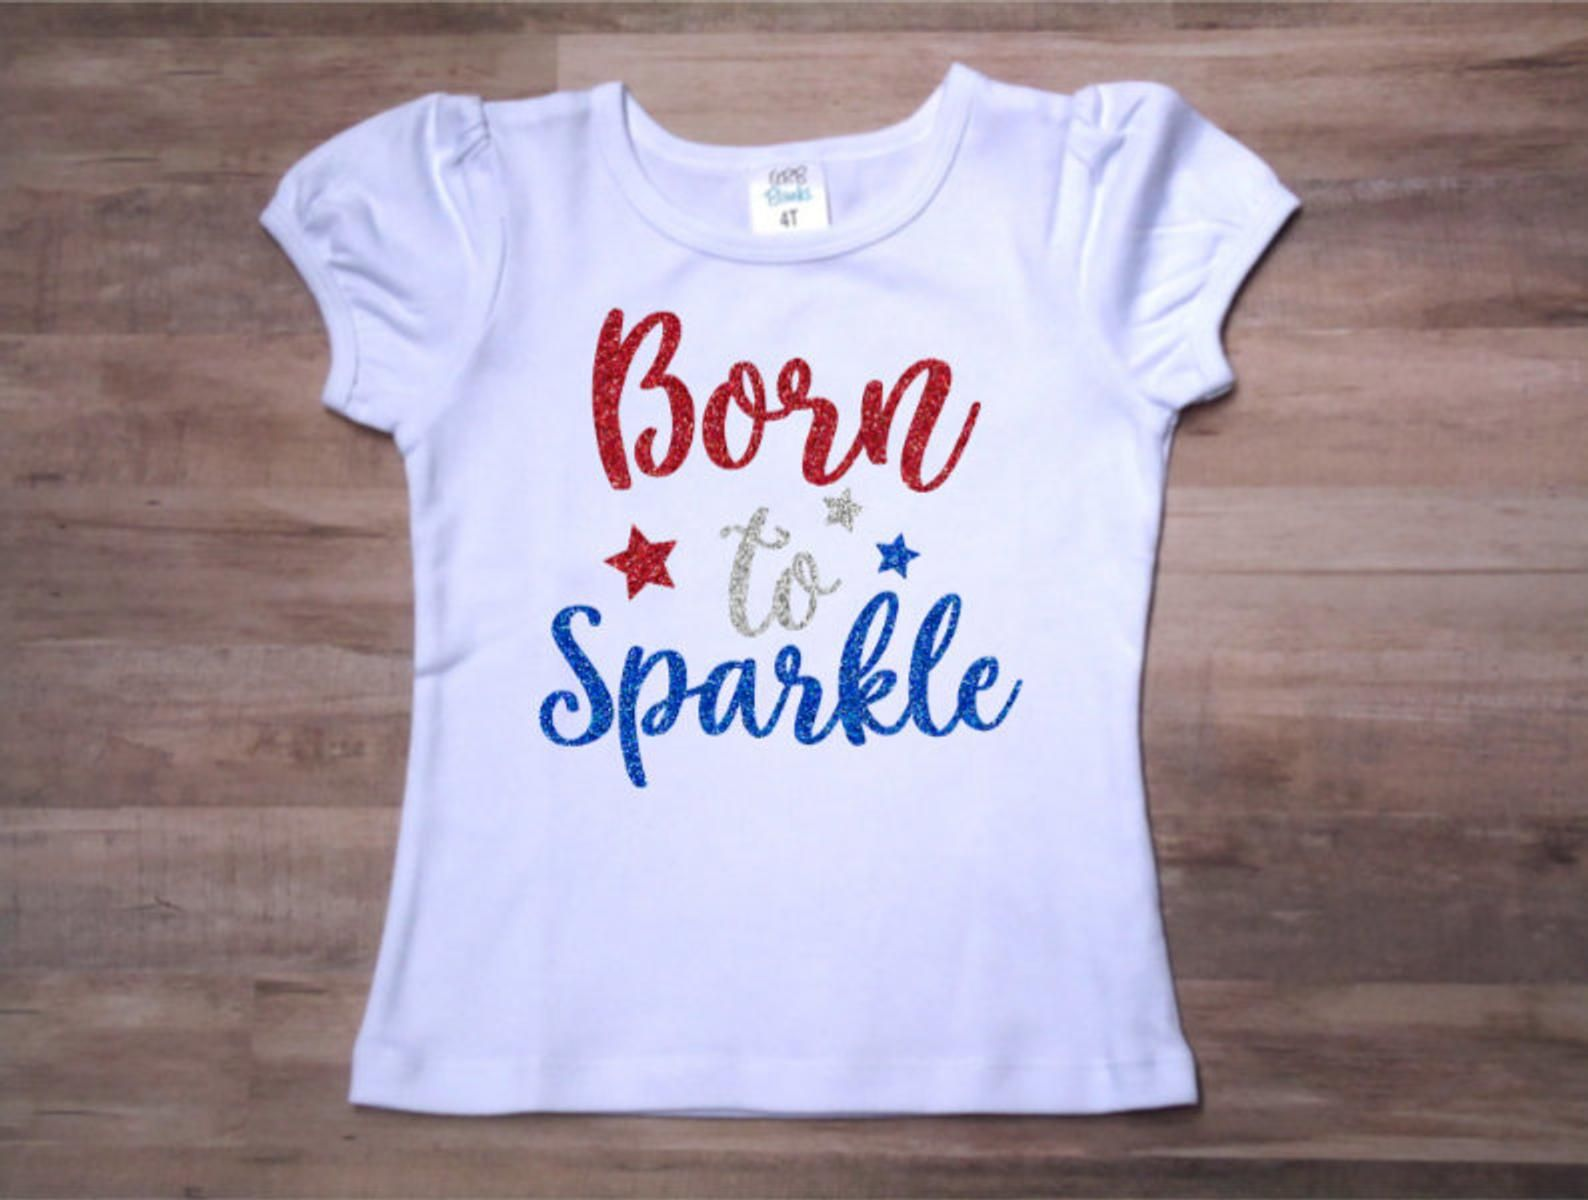 Born to Sparkle Toddler T-shirt Fourth of July Toddler Shirt Toddler Shirts Custom Vinyl Summer Shirt Toddler, Funny T-shirt